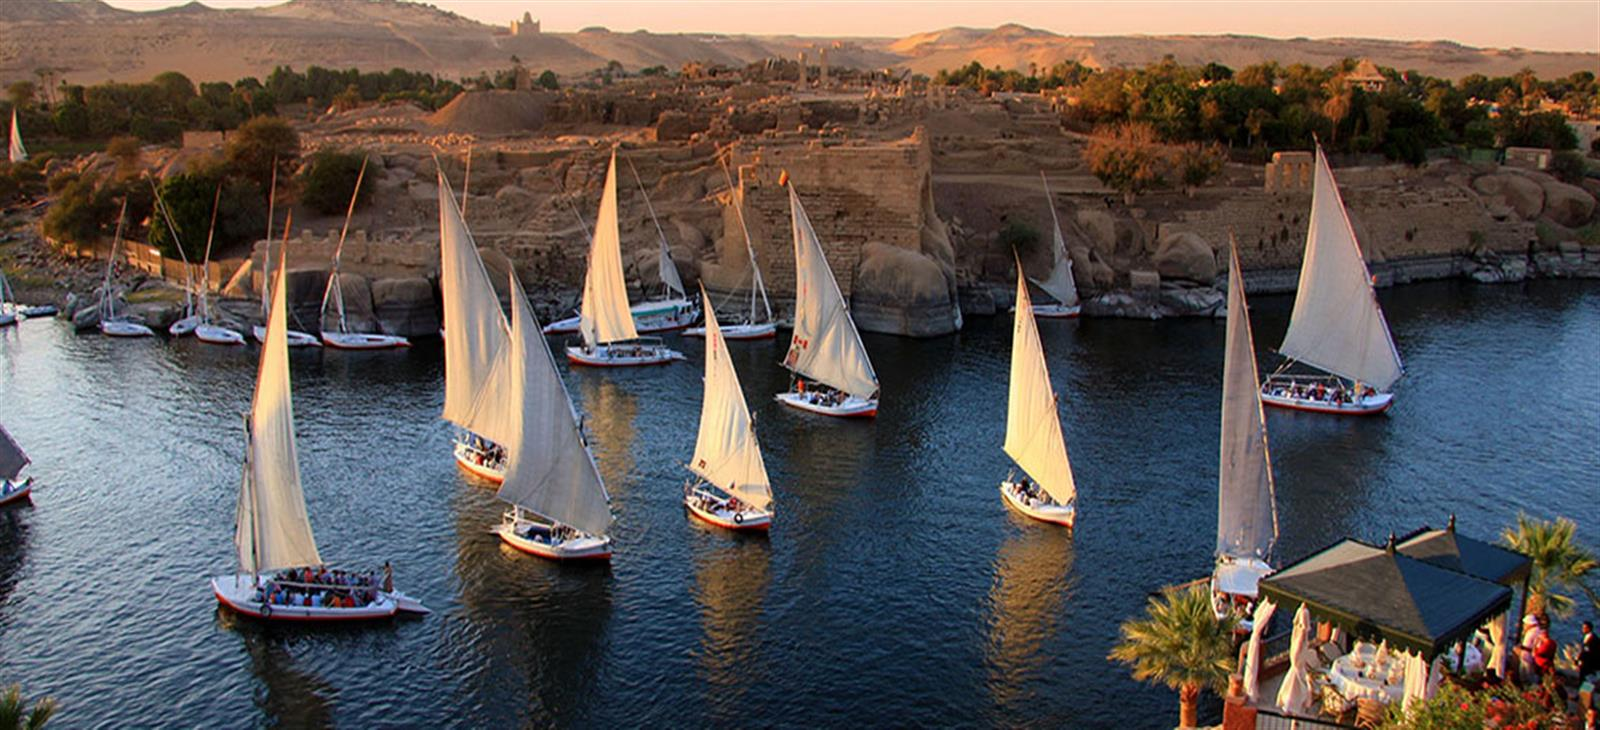 8 nights cairo luxor nile cruise